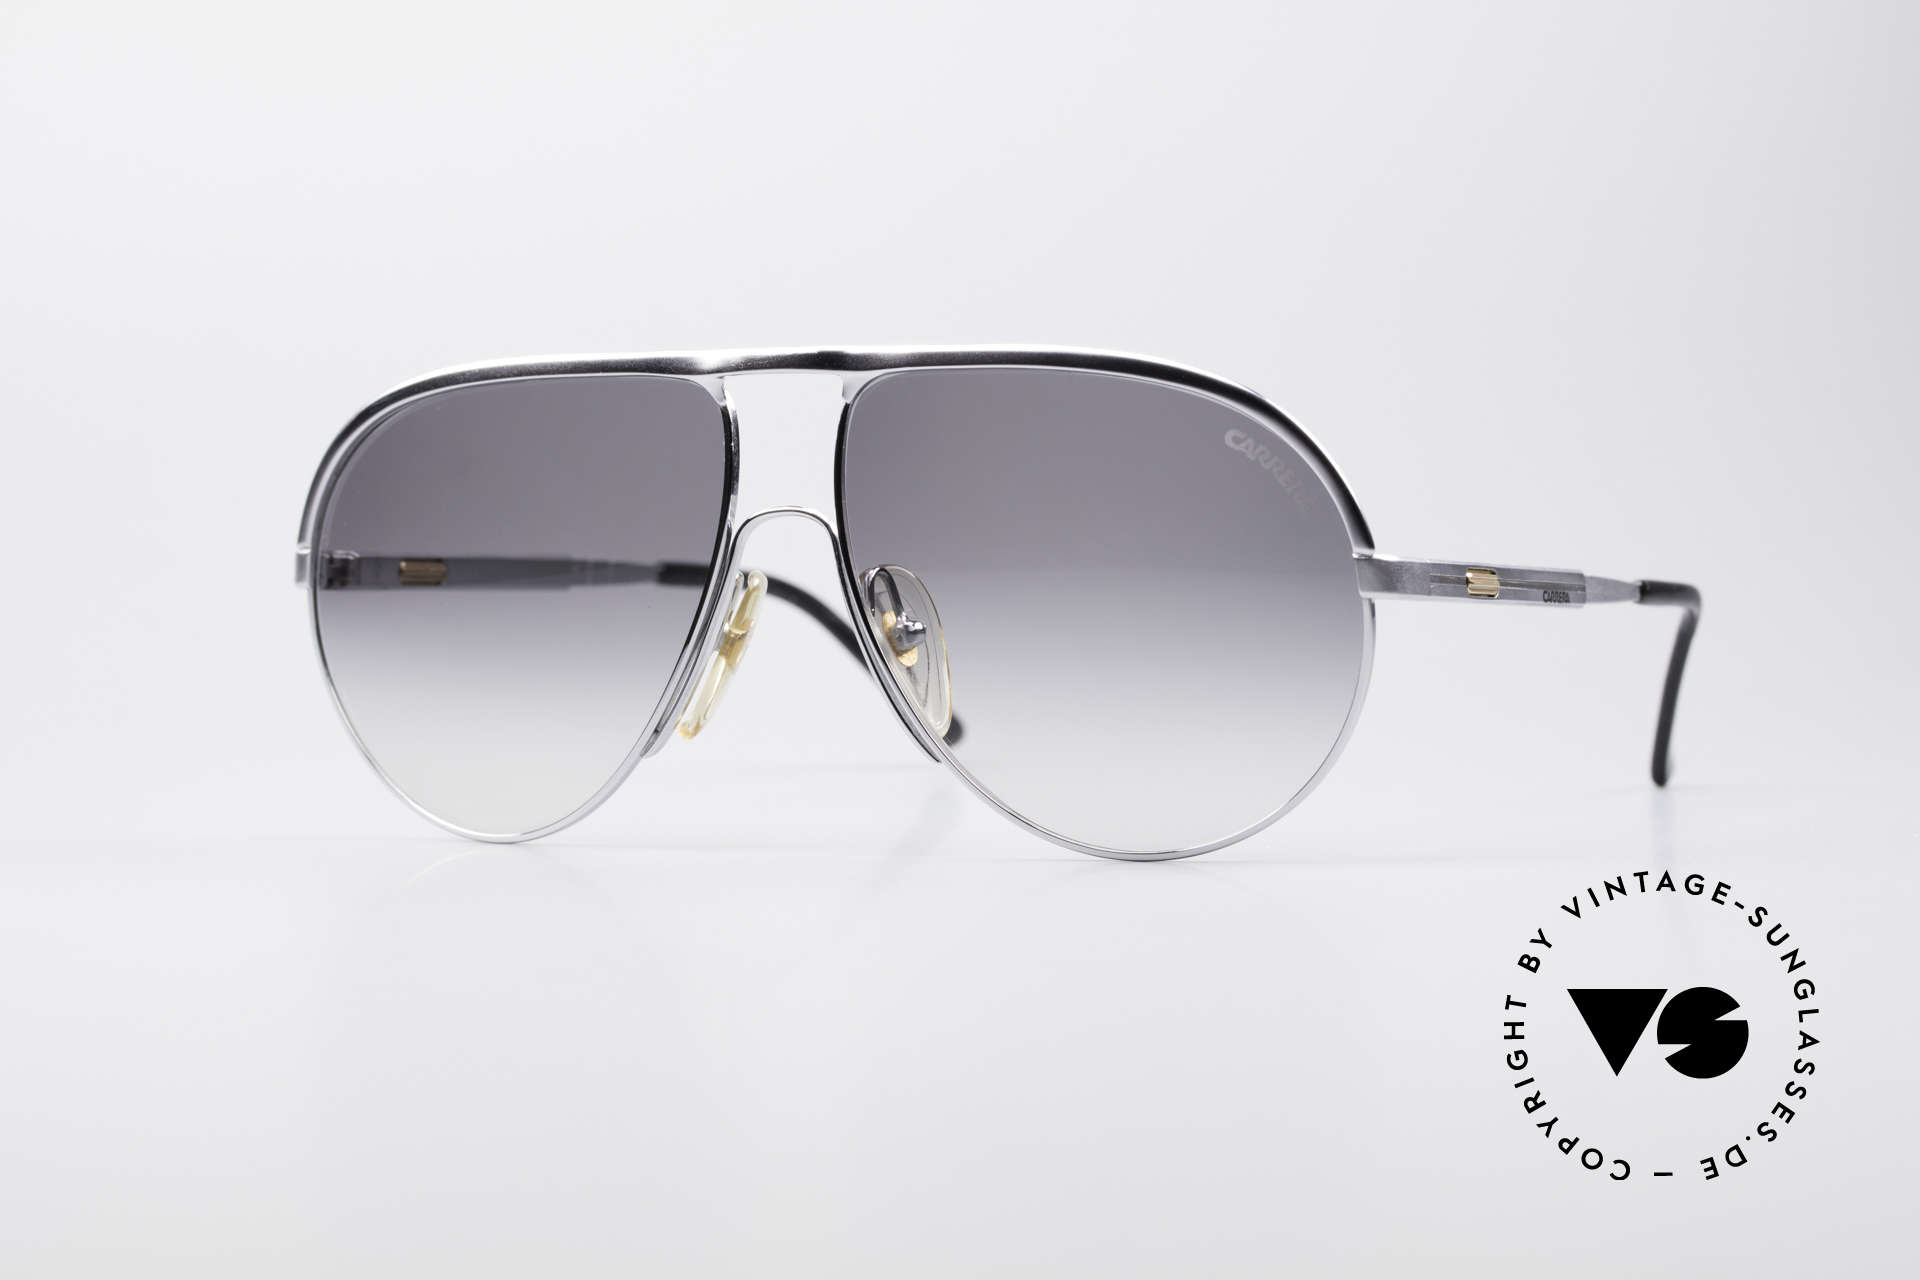 Carrera 5305 Adjustable Sunglasses, brilliant Carrera vintage sunglasses from the 80s/90s, Made for Men